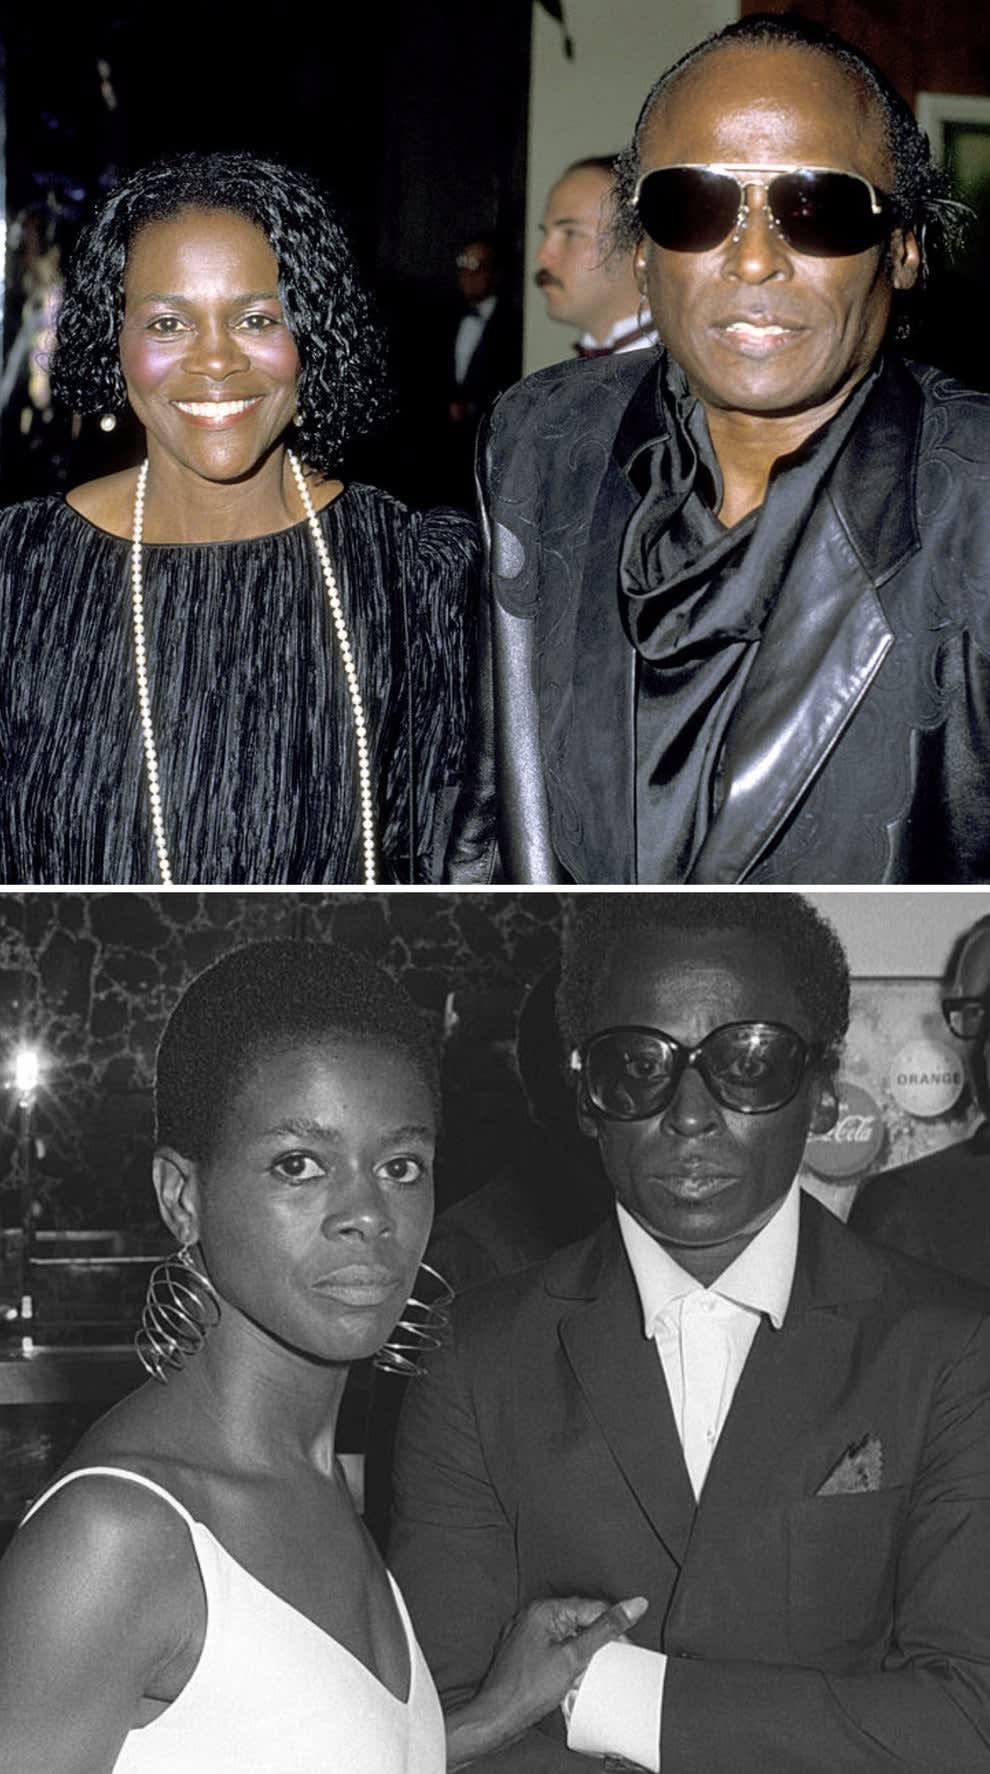 """Tyson and Davis at an event together in 1984; Tyson and Davis at the premiere of """"The Heart Is a Lonely Hunter"""" in 1968"""